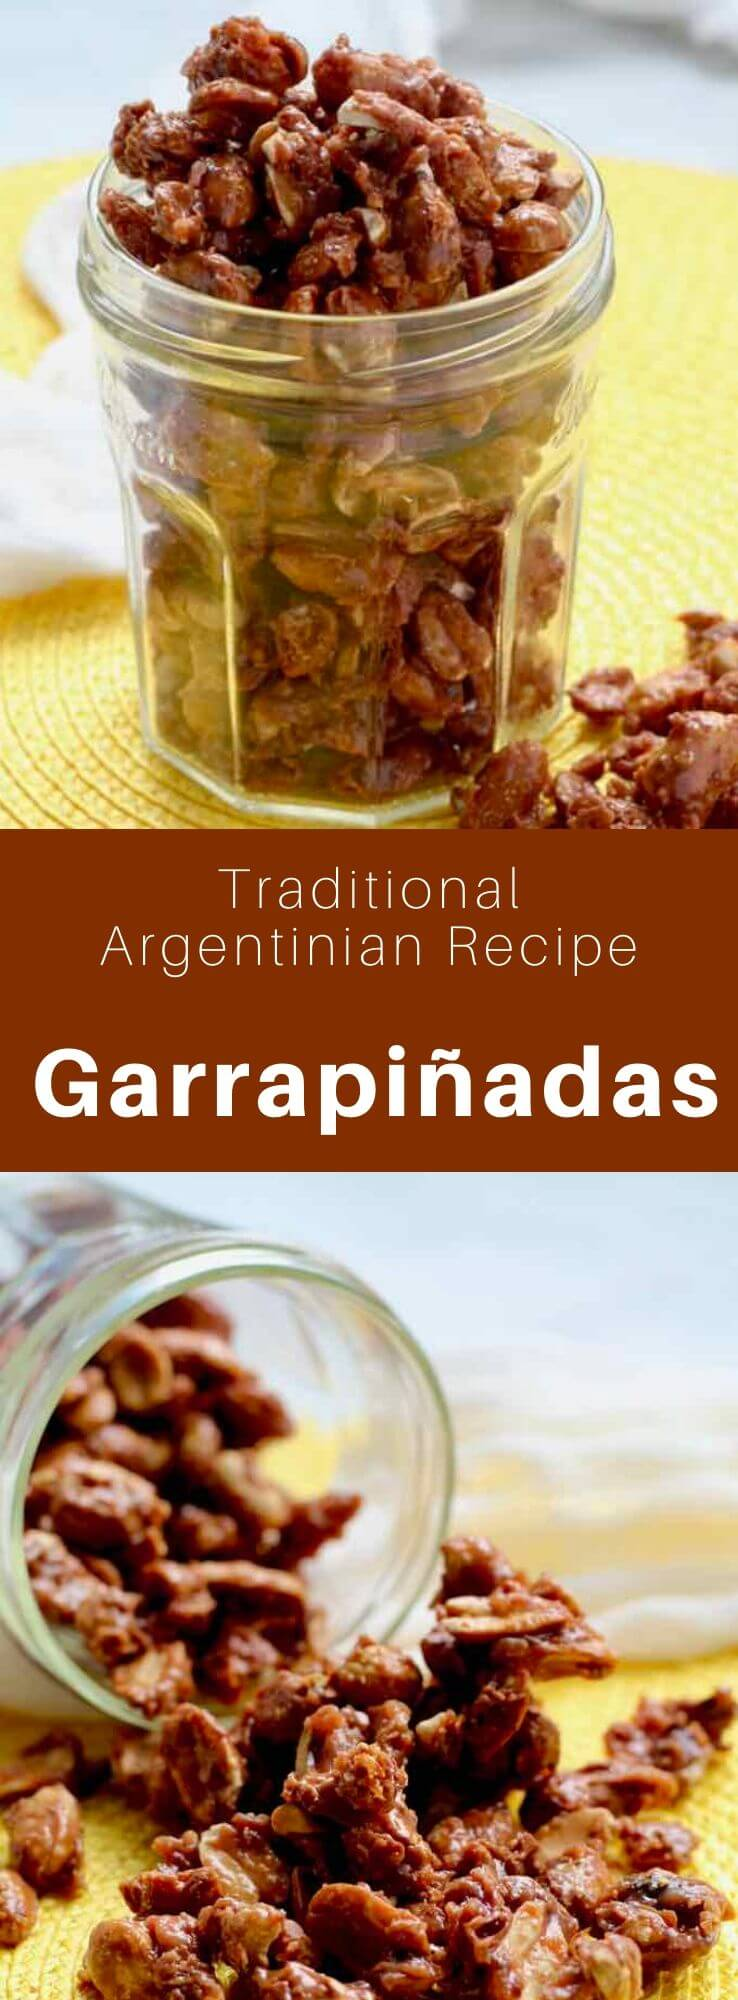 Garrapiñadas are snacks made with caramelized peanuts, popular in Latin America, particularly in Argentina, Uruguay, Chile, Mexico and Peru. #Argentina #ArgentinianRecipe #ArgentinianFood #ArgentinianCuisine #WorldCuisine #196flavors